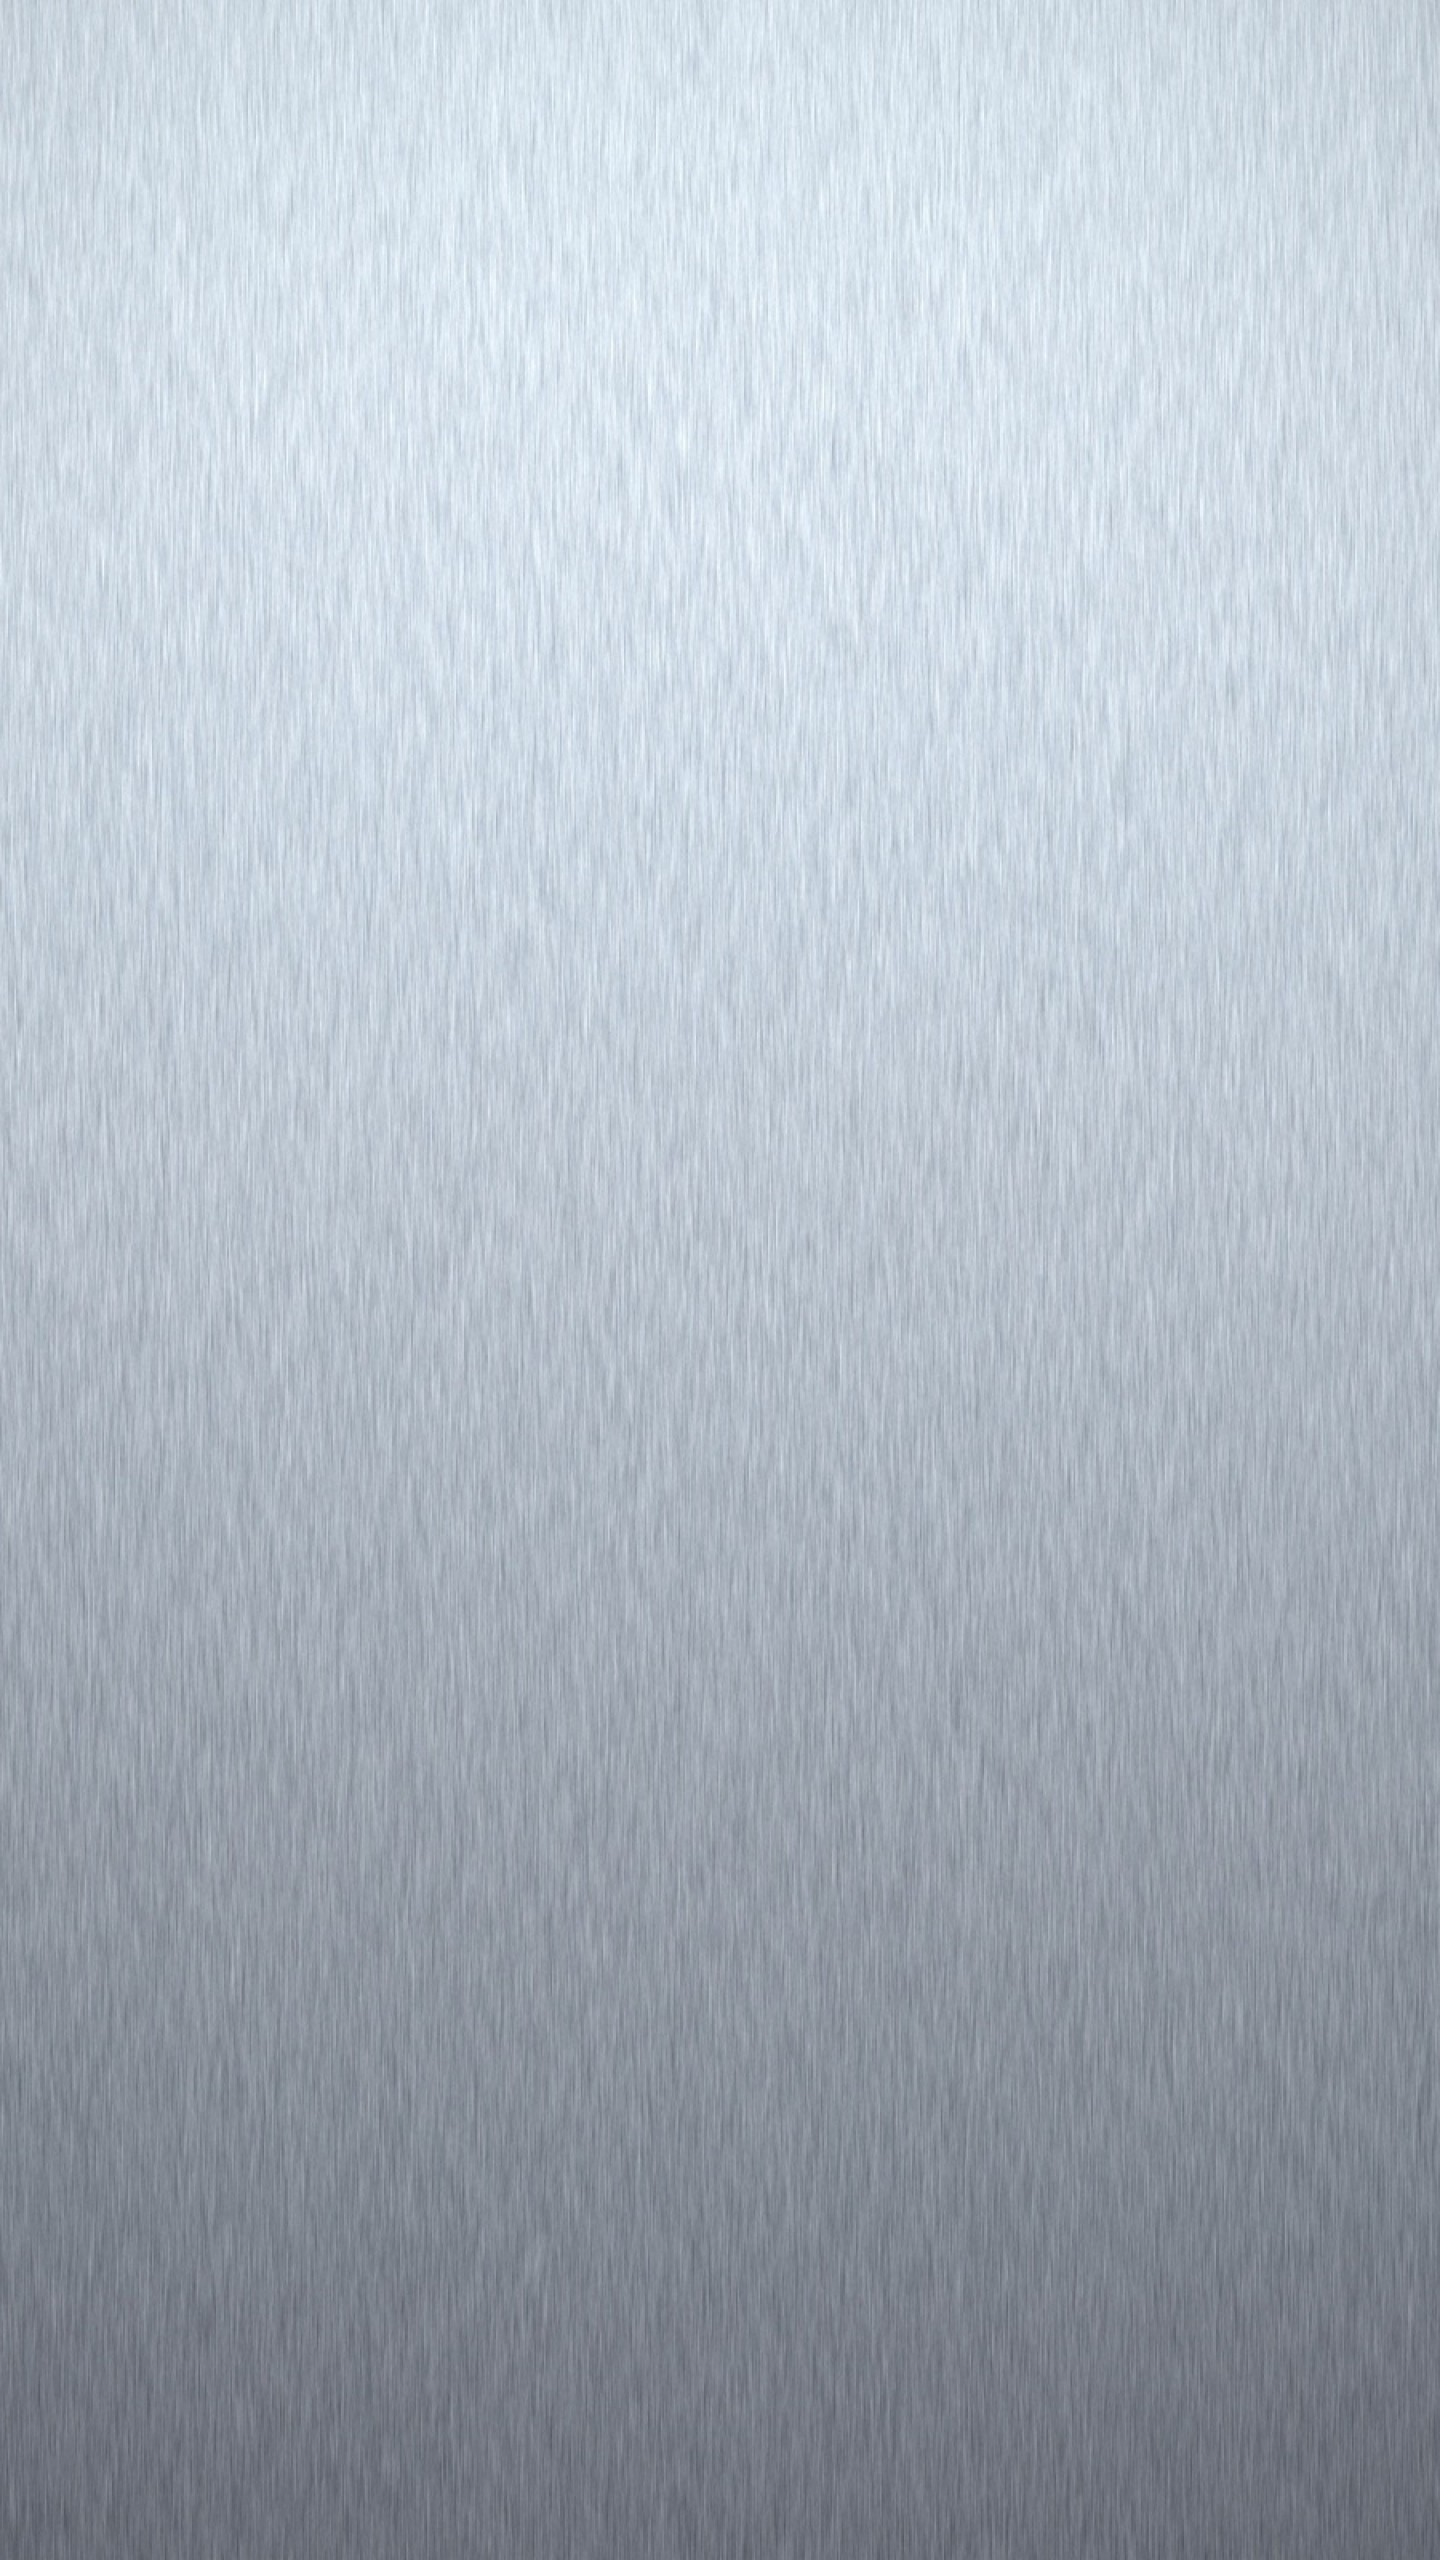 Light grey background wallpaper 63 images - Solid light gray wallpaper ...